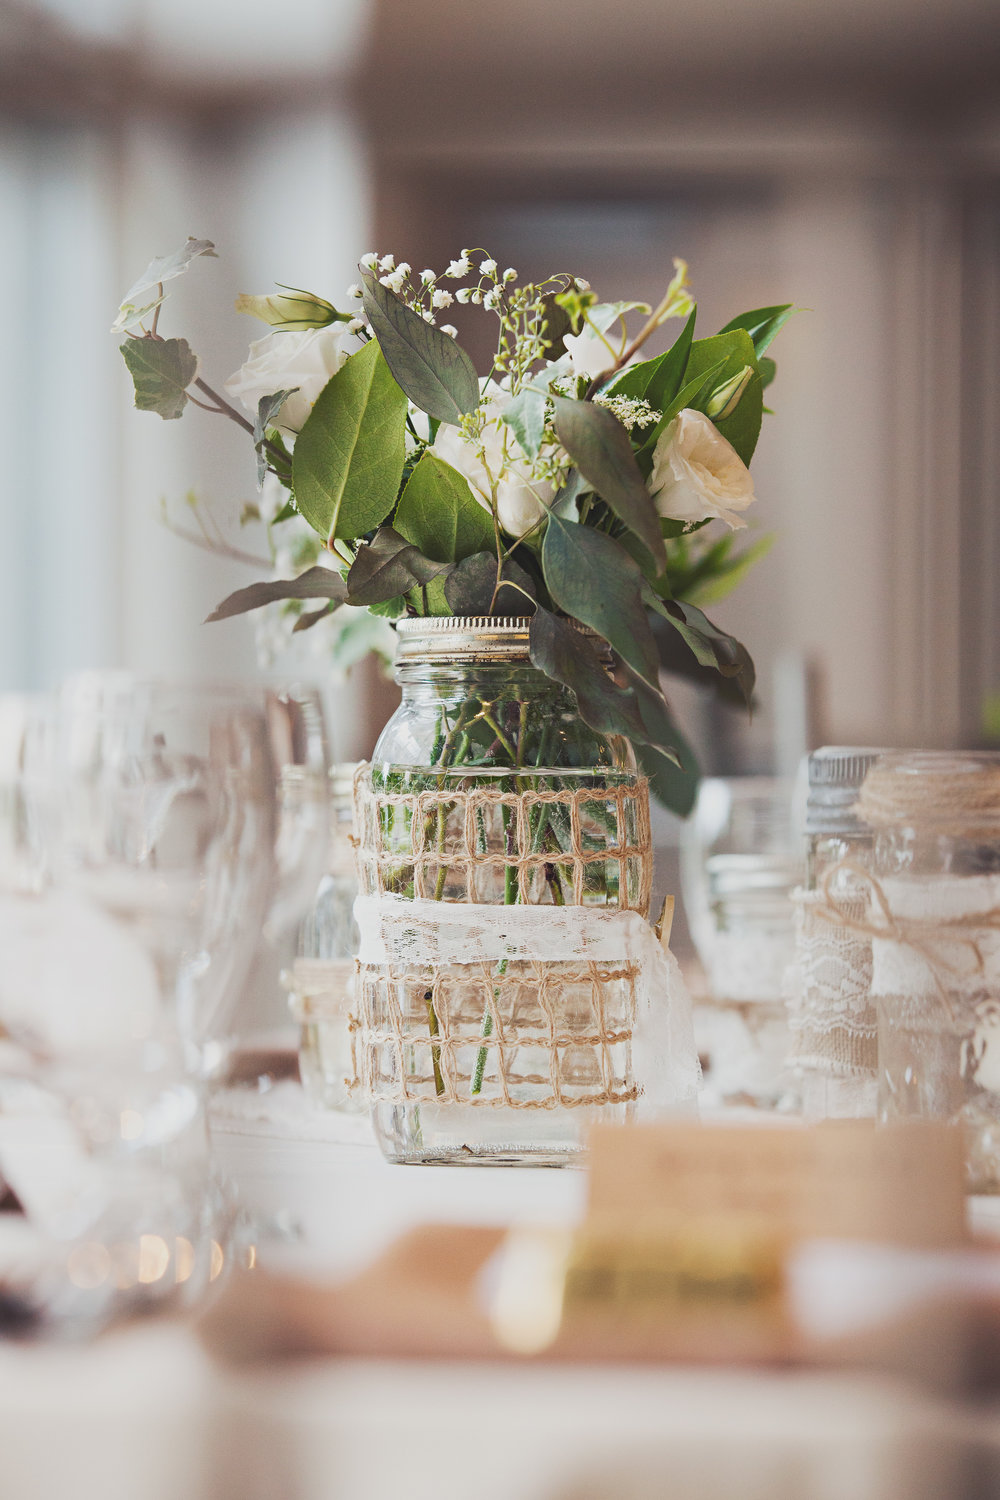 Beautifully simple centerpieces!